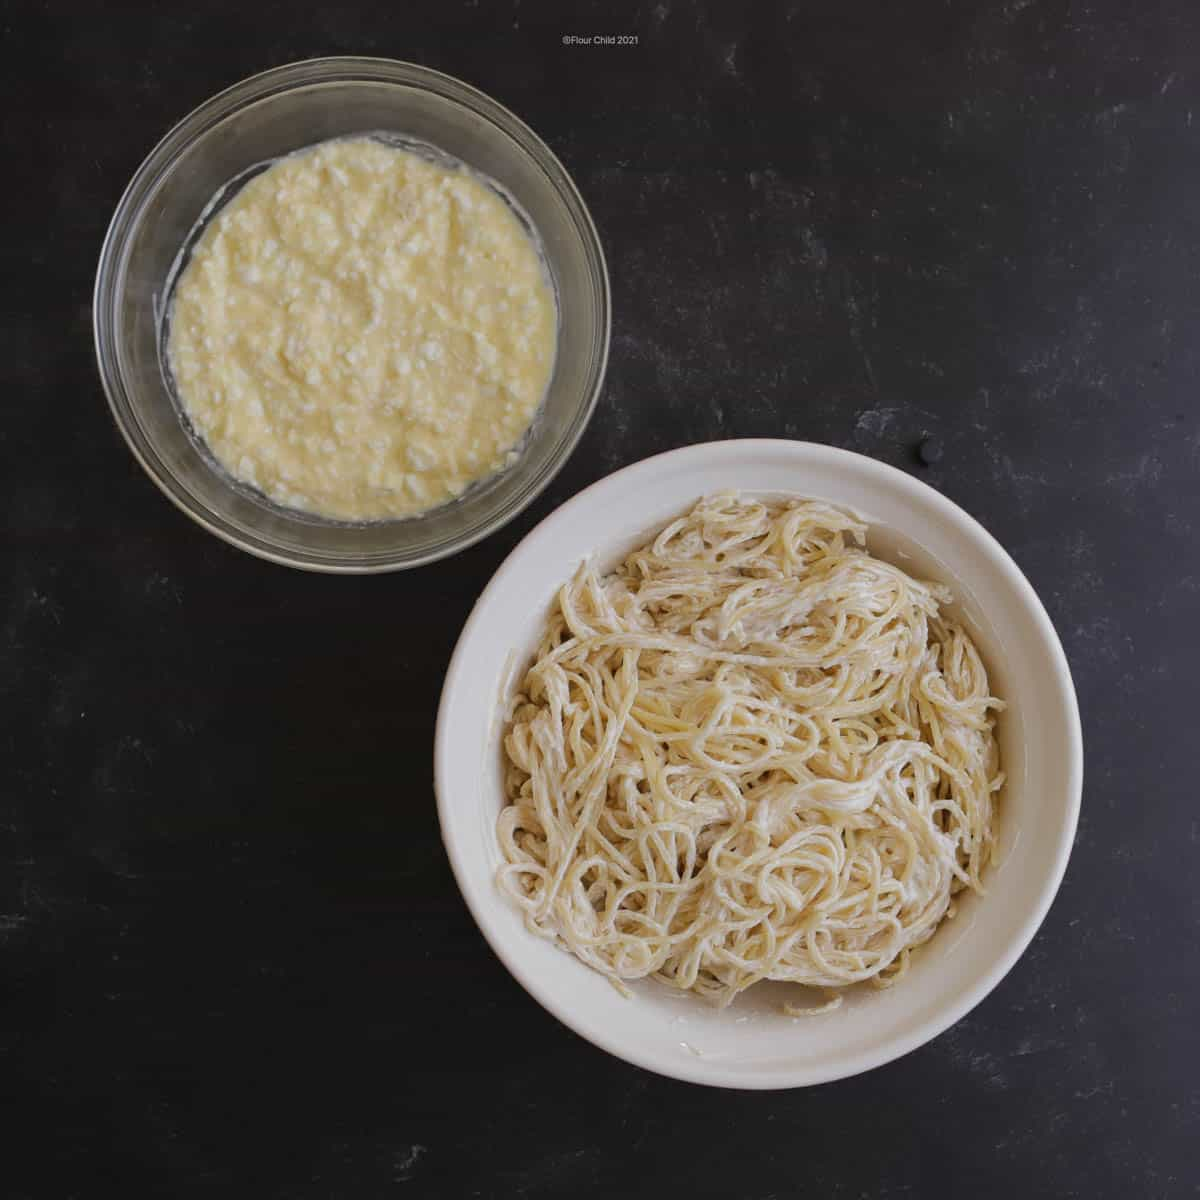 Step 3: Put parmesan in a bowl and ricotta cheese mixture in a separate bowl